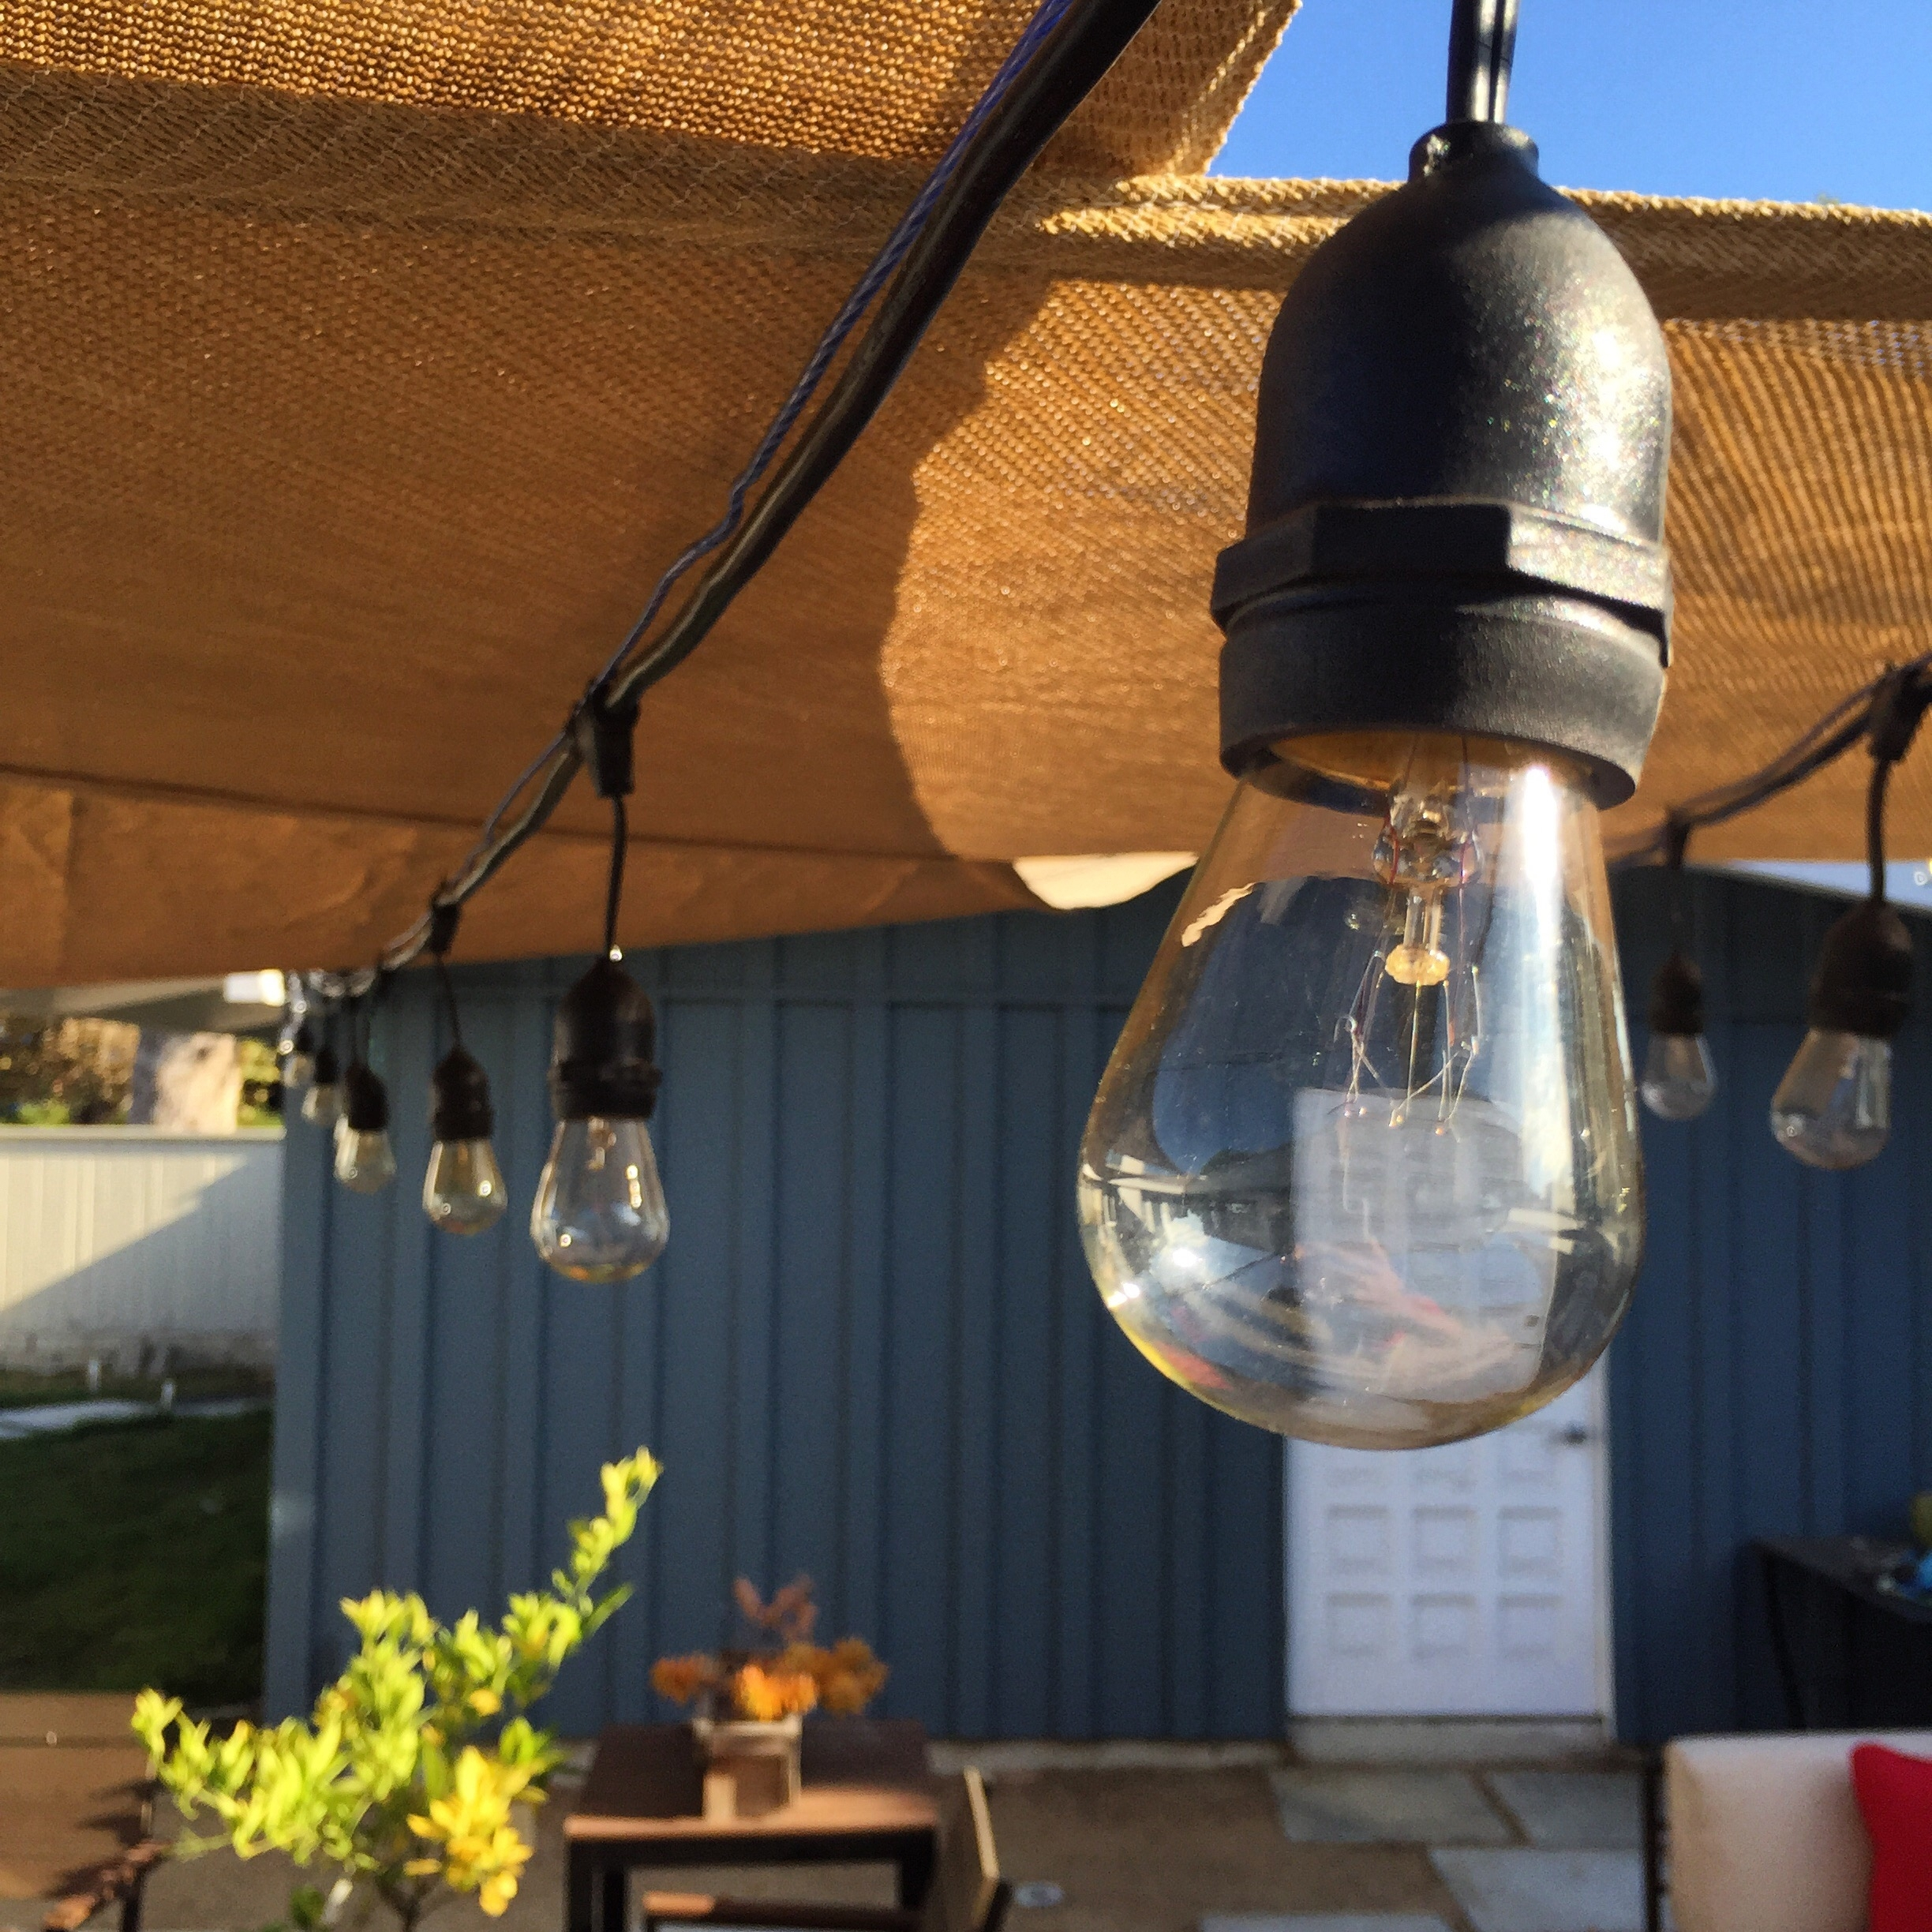 Outdoor Lights On Patio: 15 Best Collection Of Hanging Outdoor String Lights At Costco